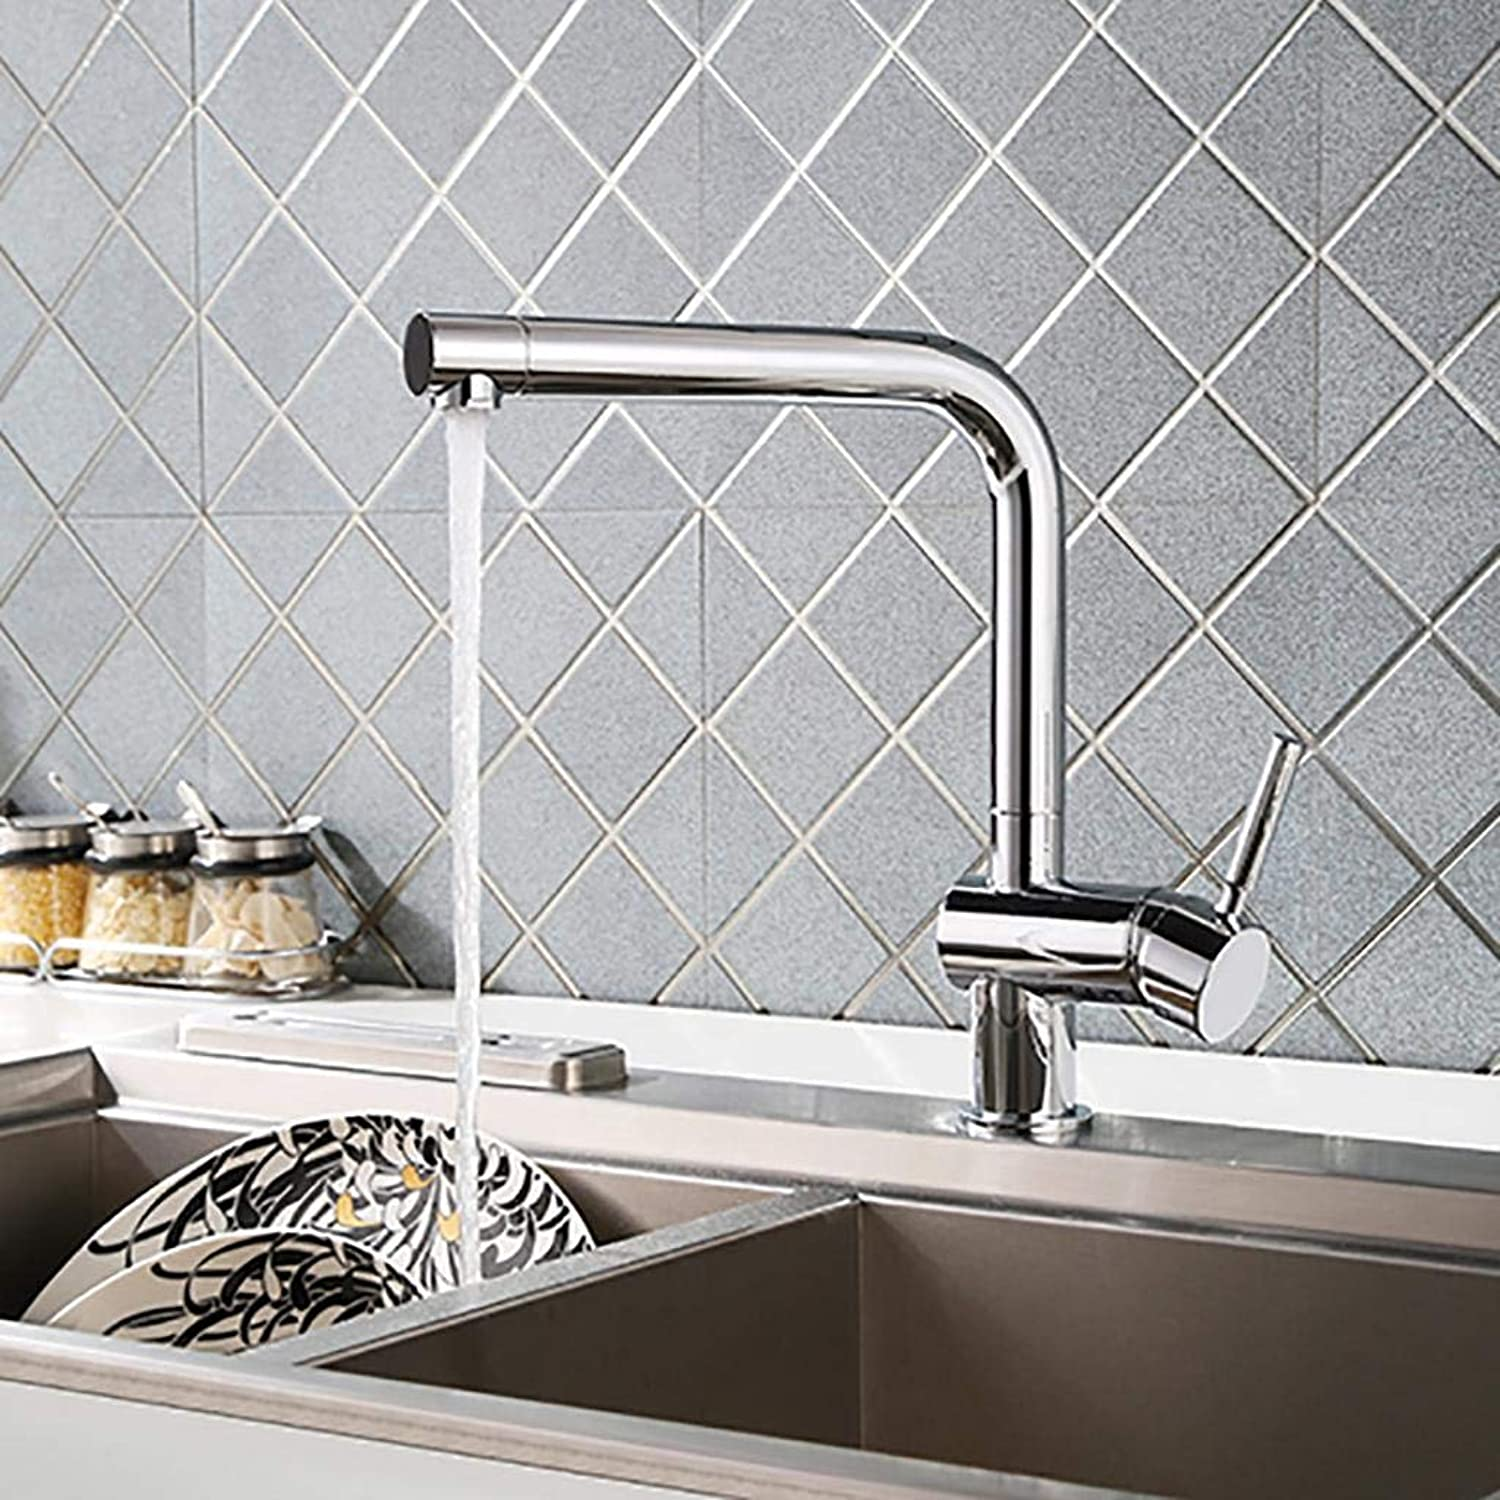 BKPH Single Handle Faucets High Arc Swivel Spout Kitchen Sink Solid Brass Hot and Cold Mixer Taps